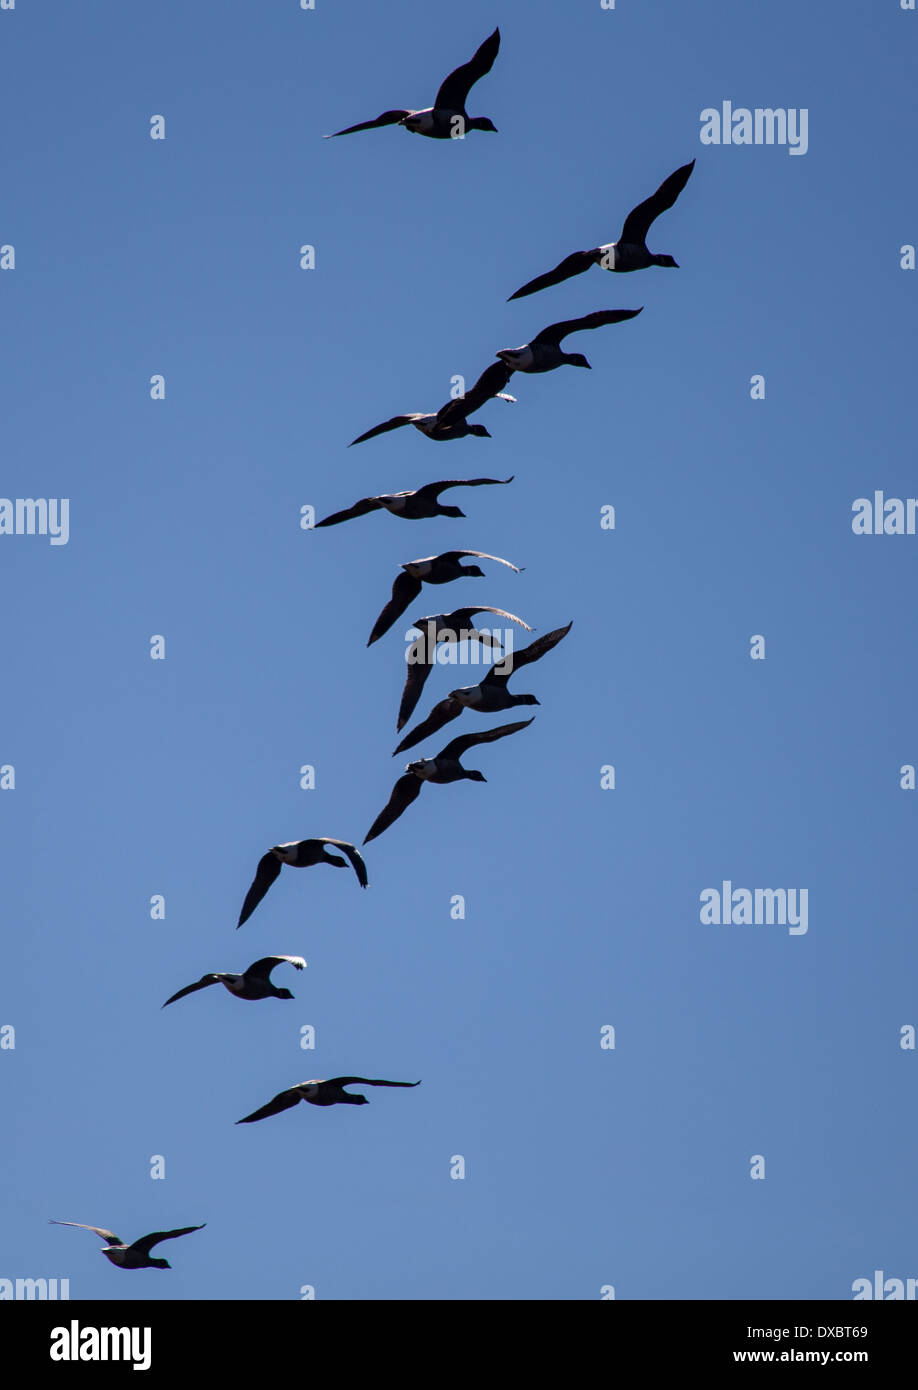 Brent geese flying in formation - Stock Image